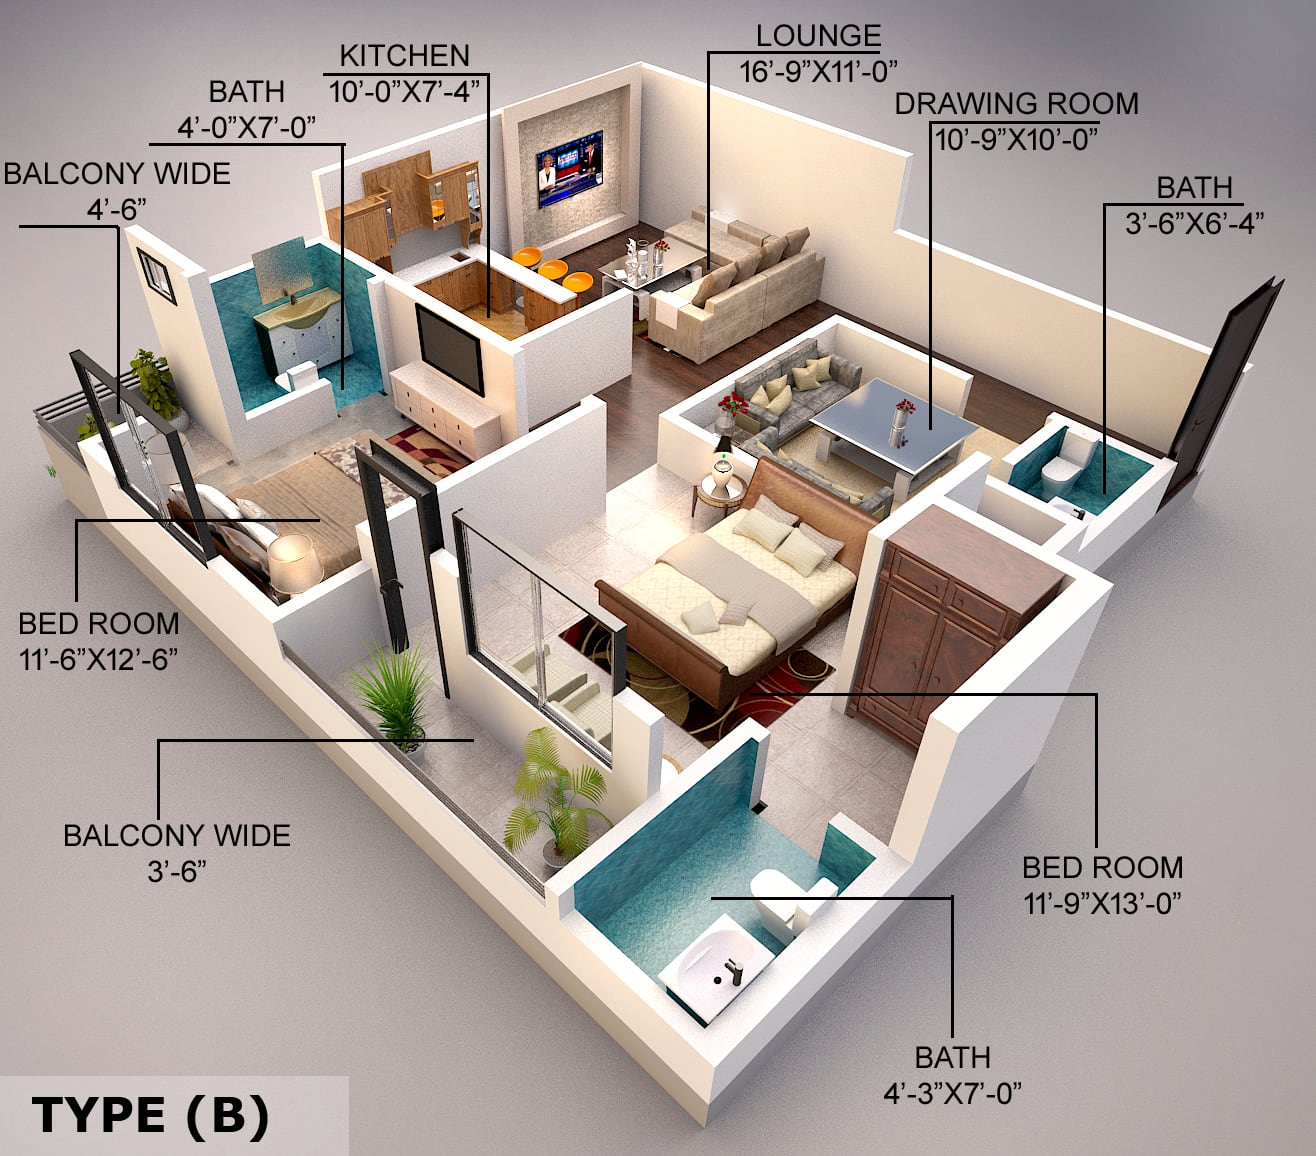 Create 3d Floor Plan Exterior And Interior Model Sketchup By Prospectacled